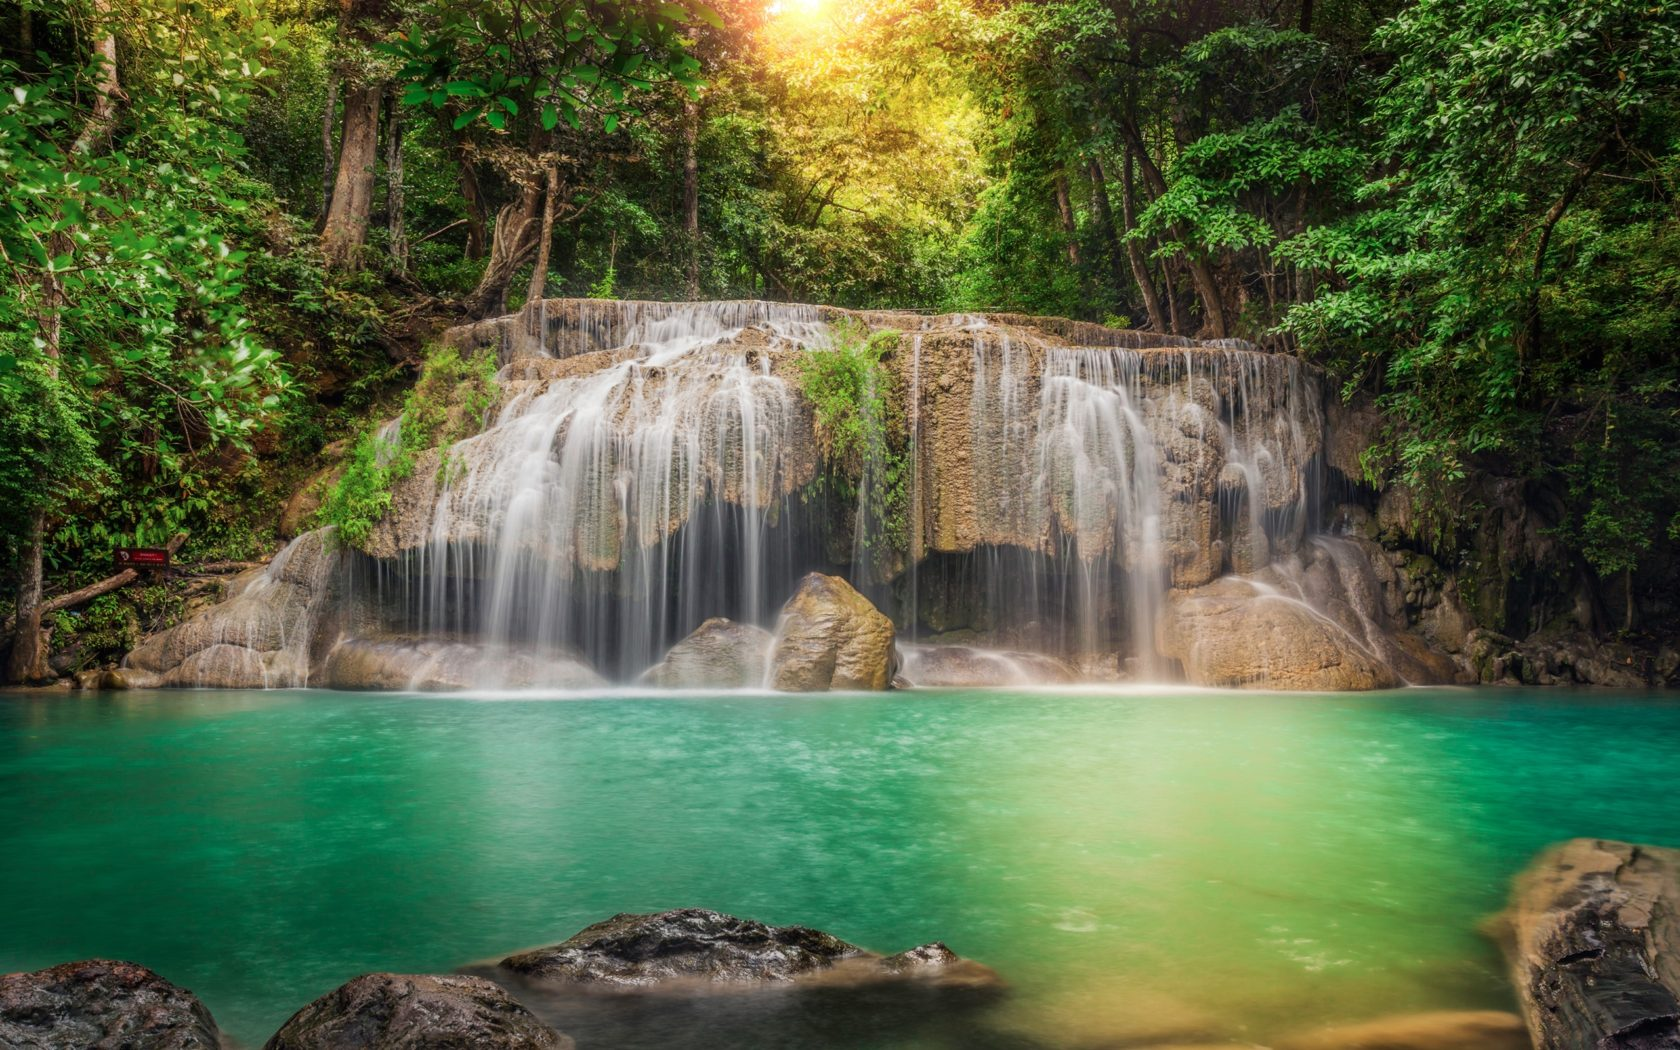 Fall Pictures For Computer Wallpaper Thailand Stream Cascade Rocks Jungles Waterfalls Forest